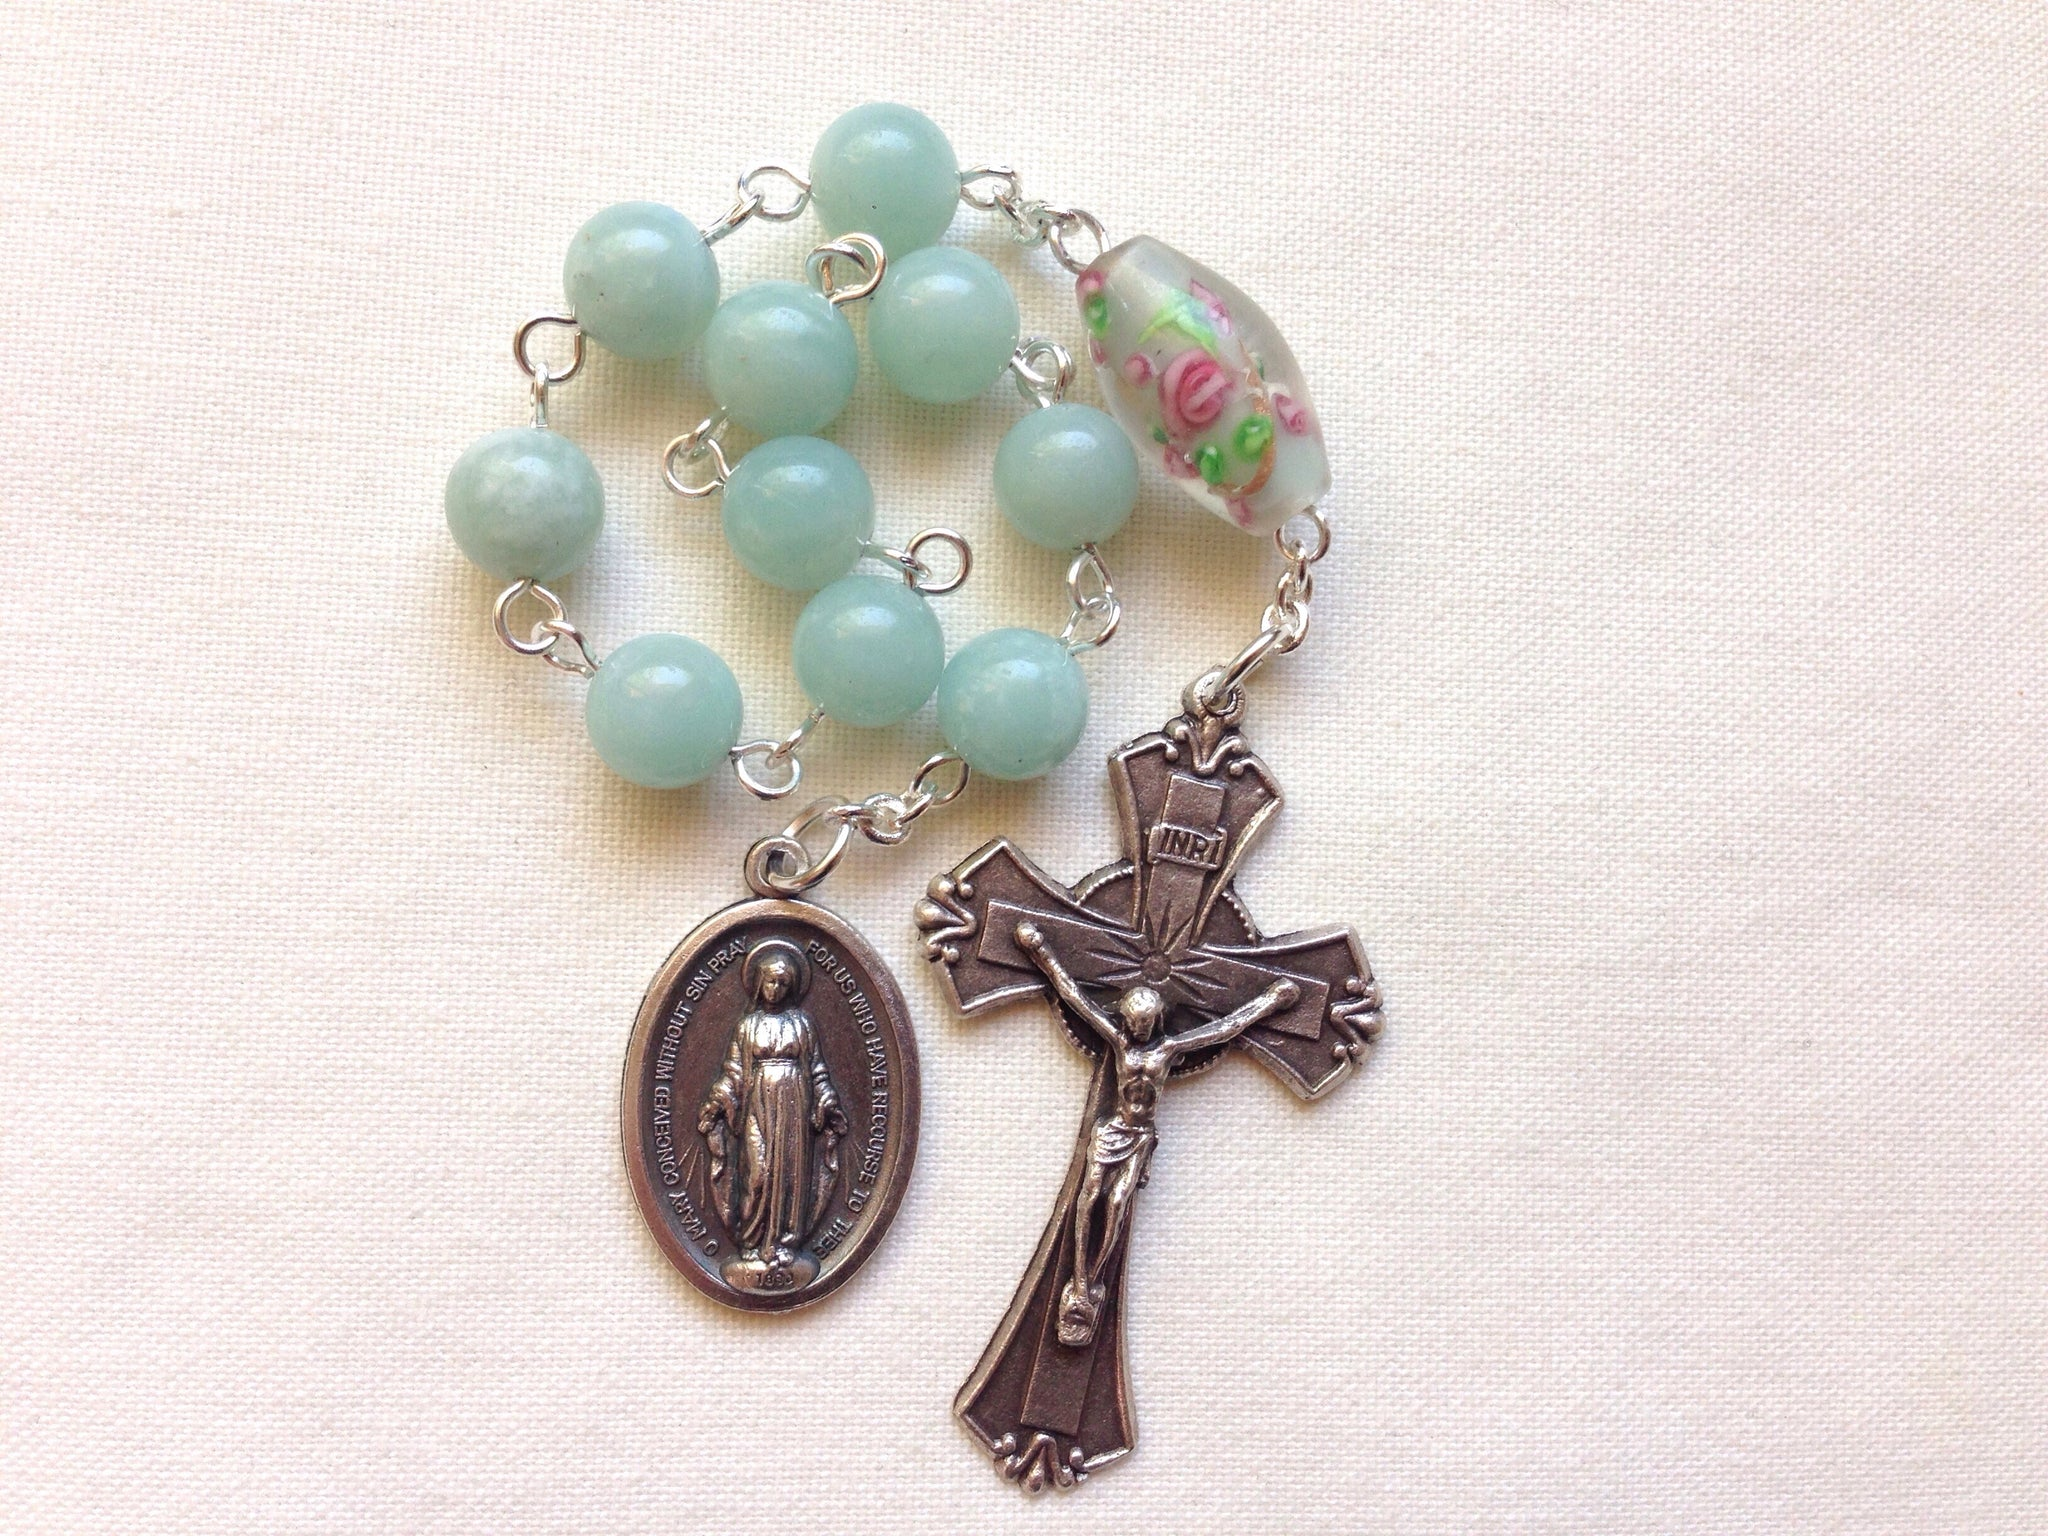 Amazonite pocket rosary with Miraculous Medal